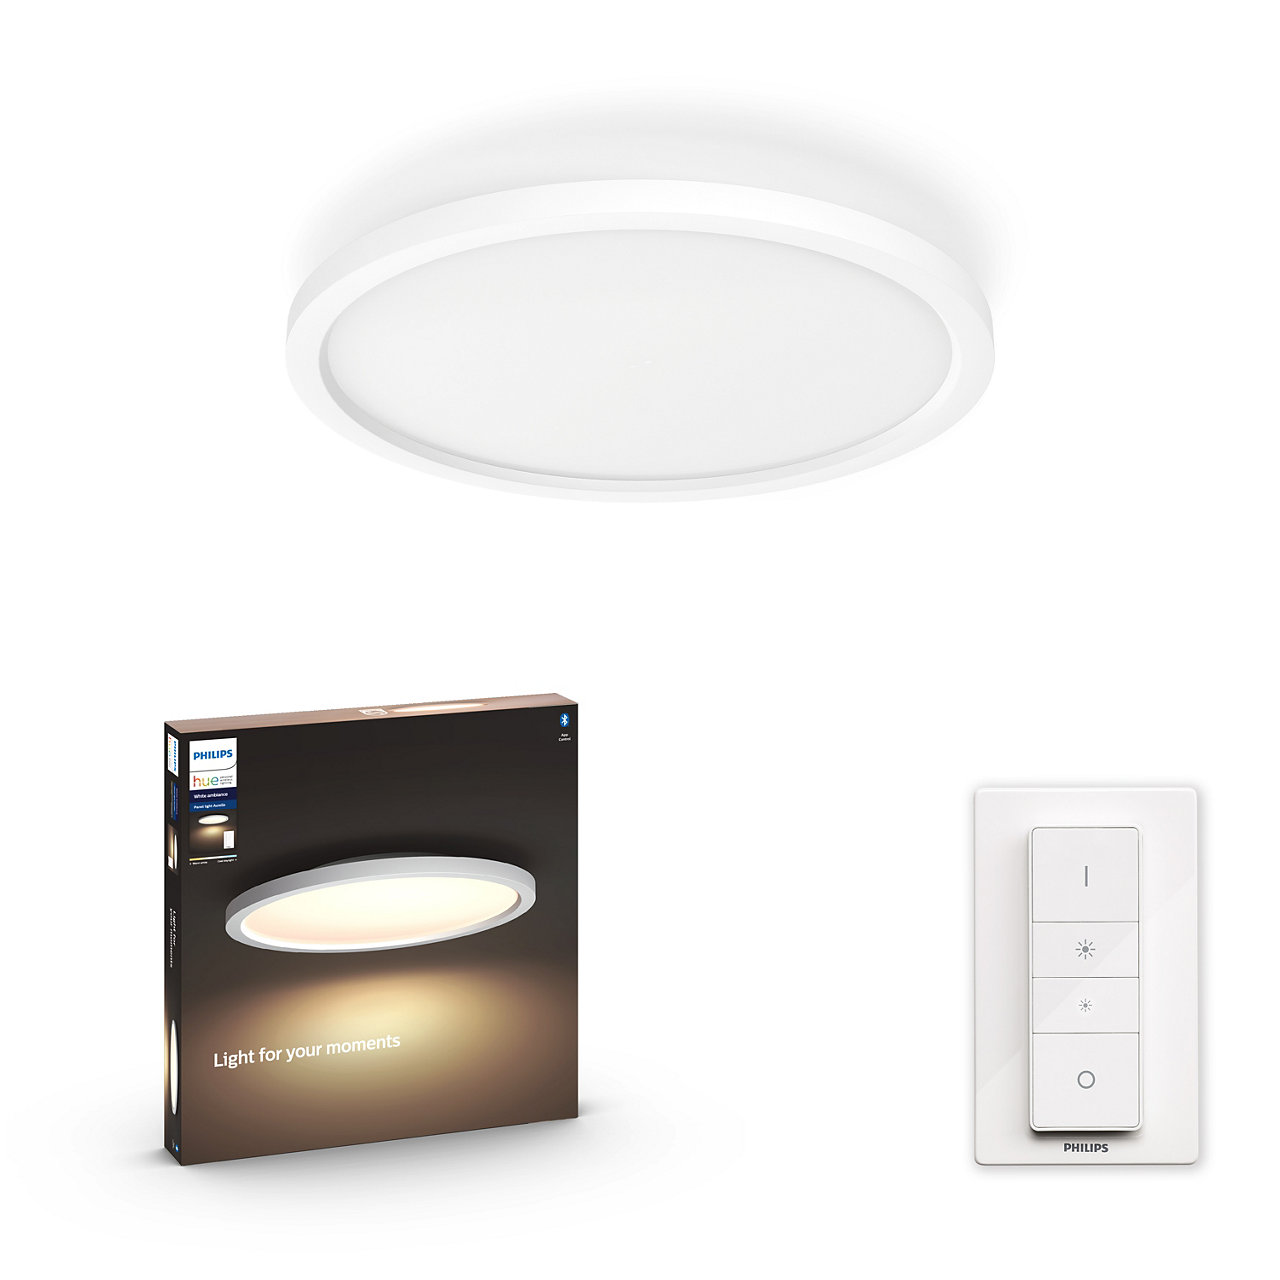 Philips Hue - Aurelle Round Ceiling Lamp - White Ambiance - Bluetooth & Dimmer Included